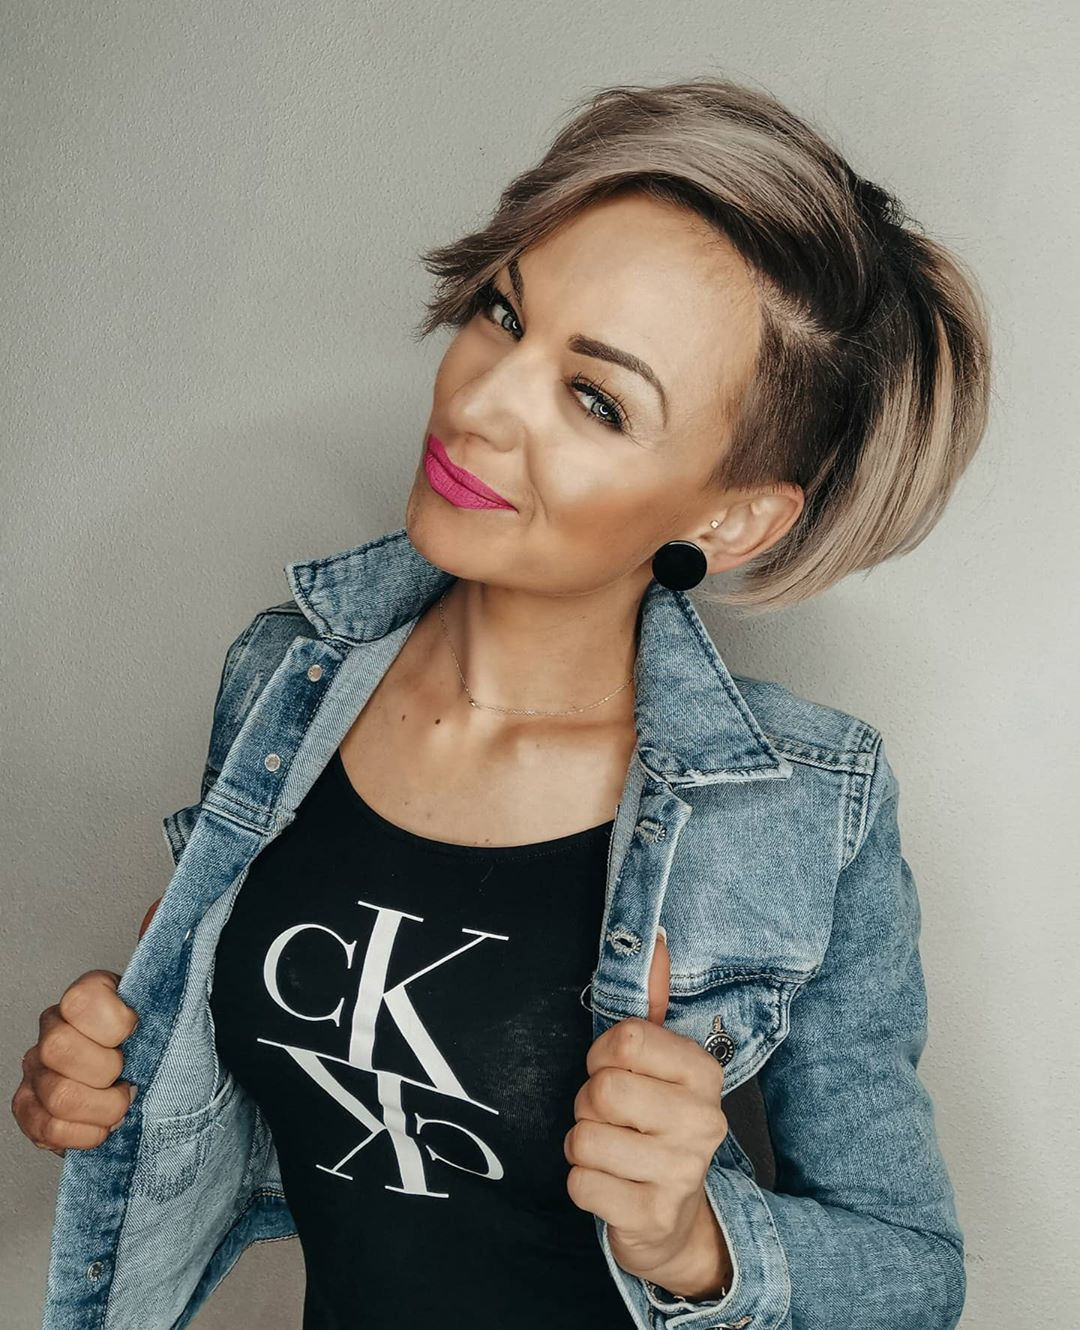 Best Pixie Bob Haircuts to Build Your Own in 2020 51